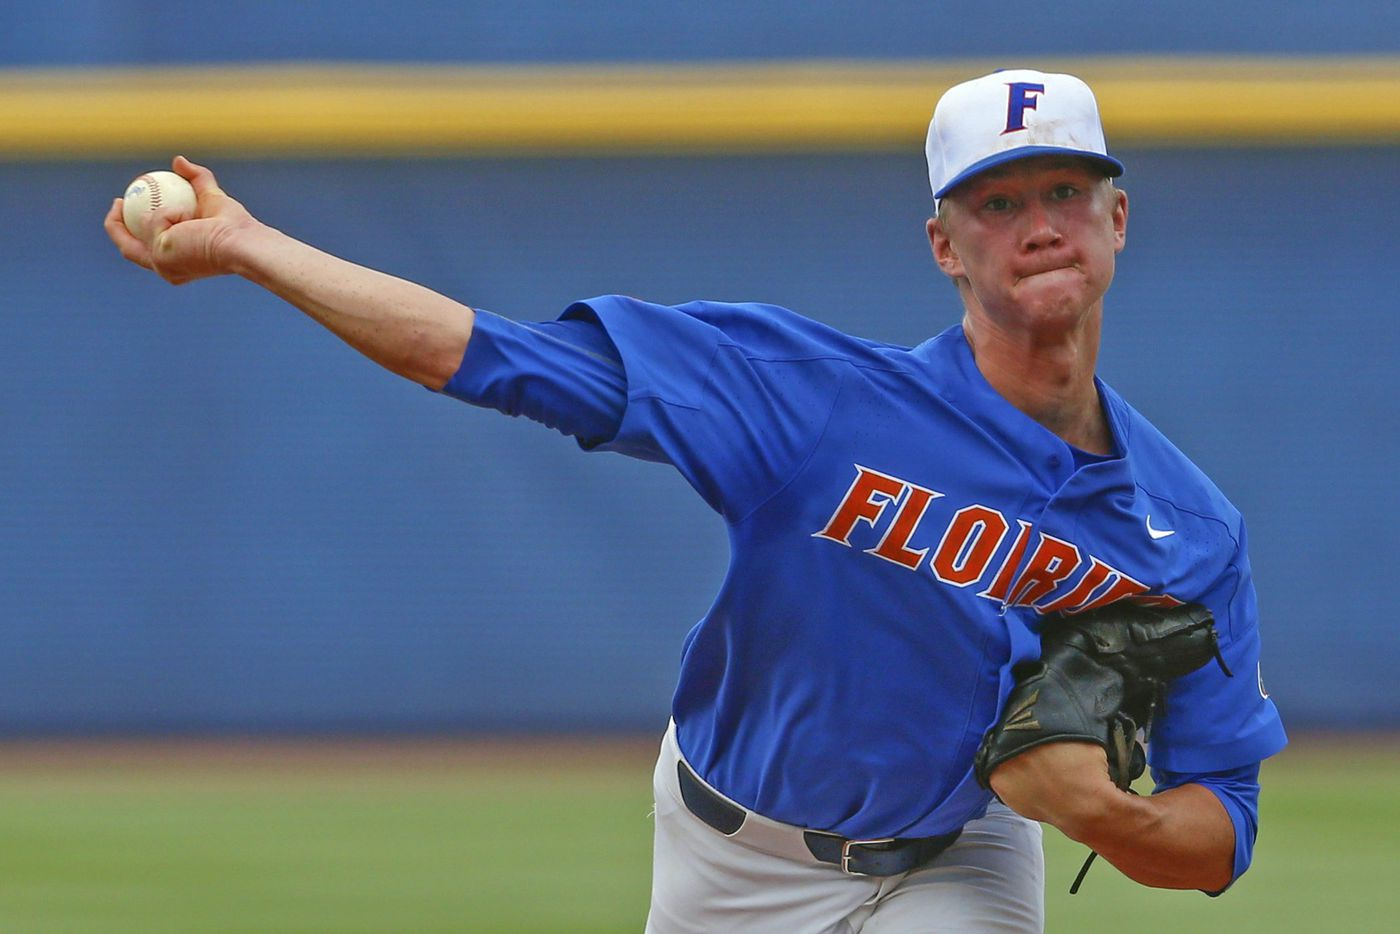 Florida's Brady Singer would be worthwhile pick for Phillies | Bob Brookover